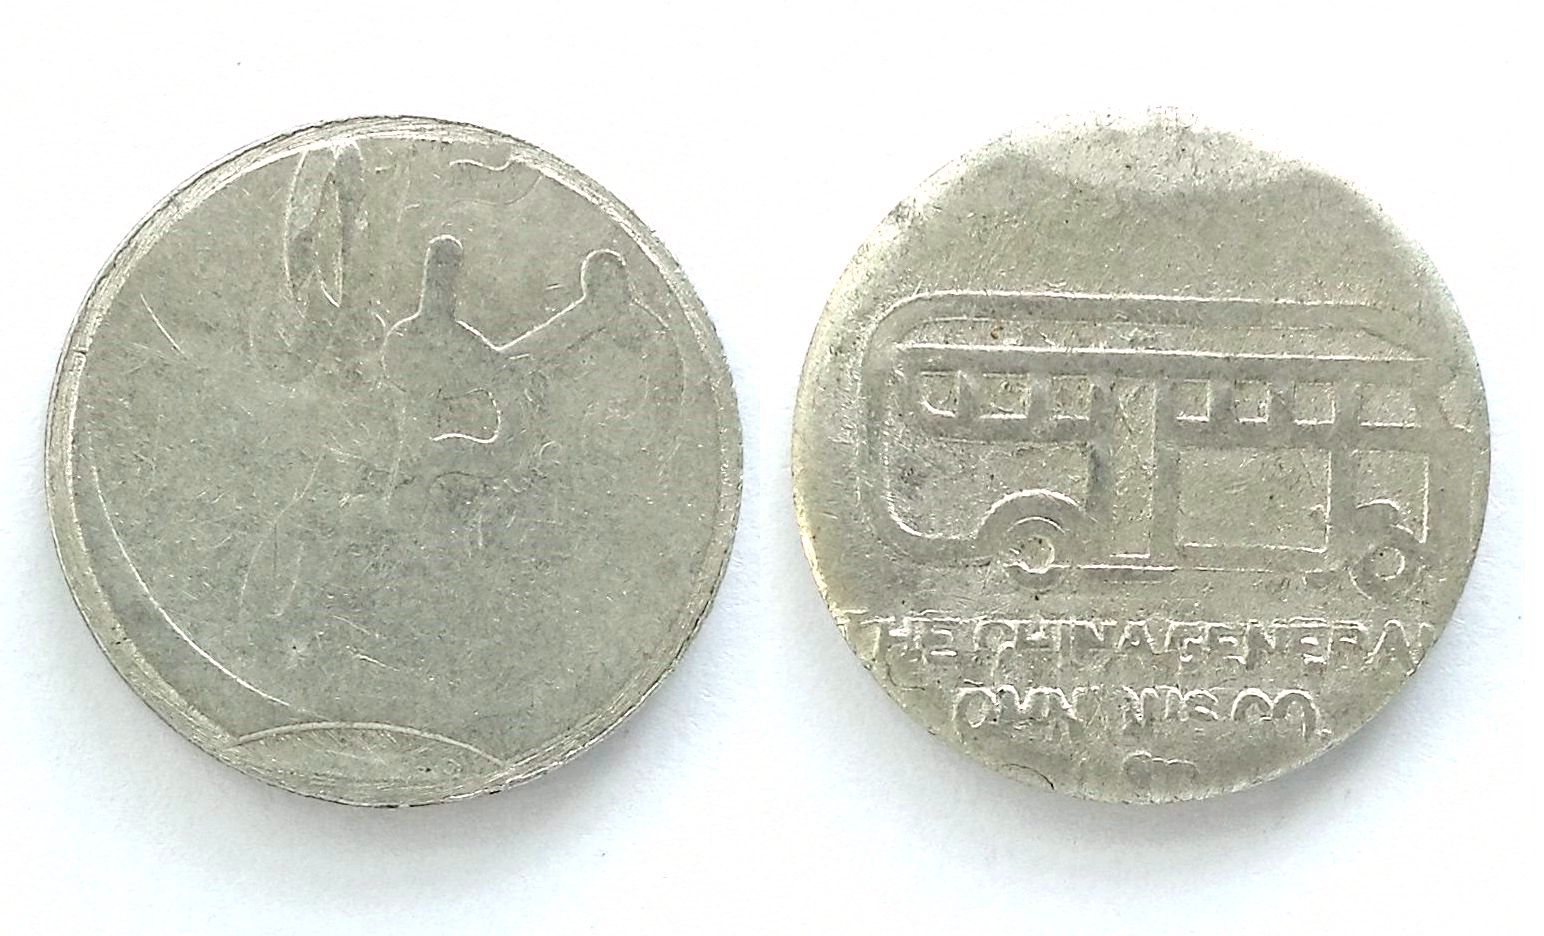 BT009, Shanghai Bus Token, 1939 Issue 1 Cent, ERROR